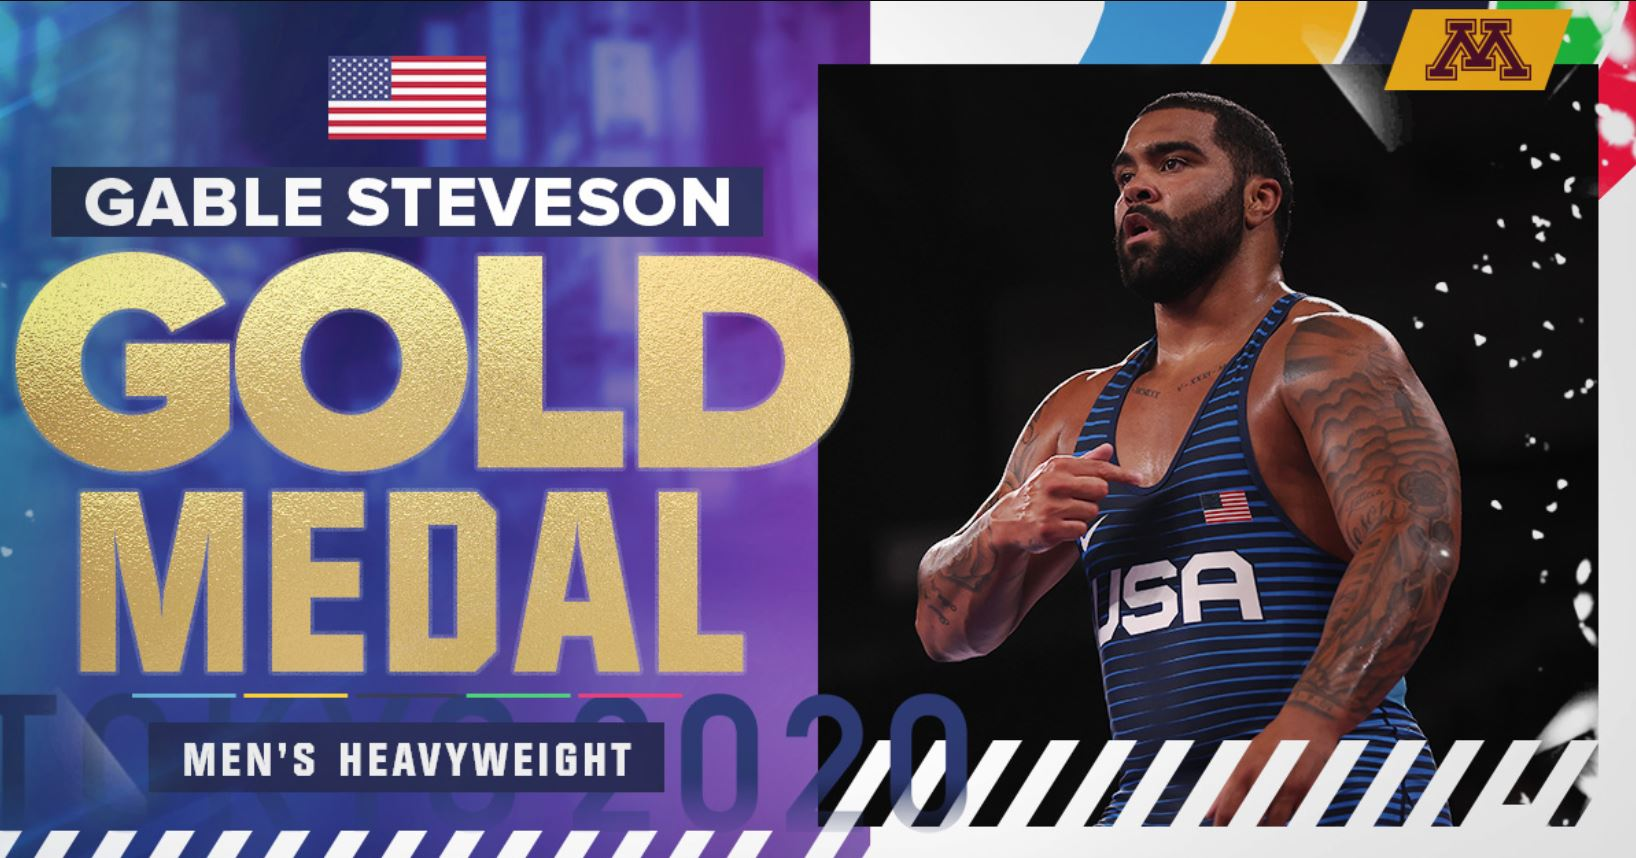 wwe & ufc want olympic gold medalist